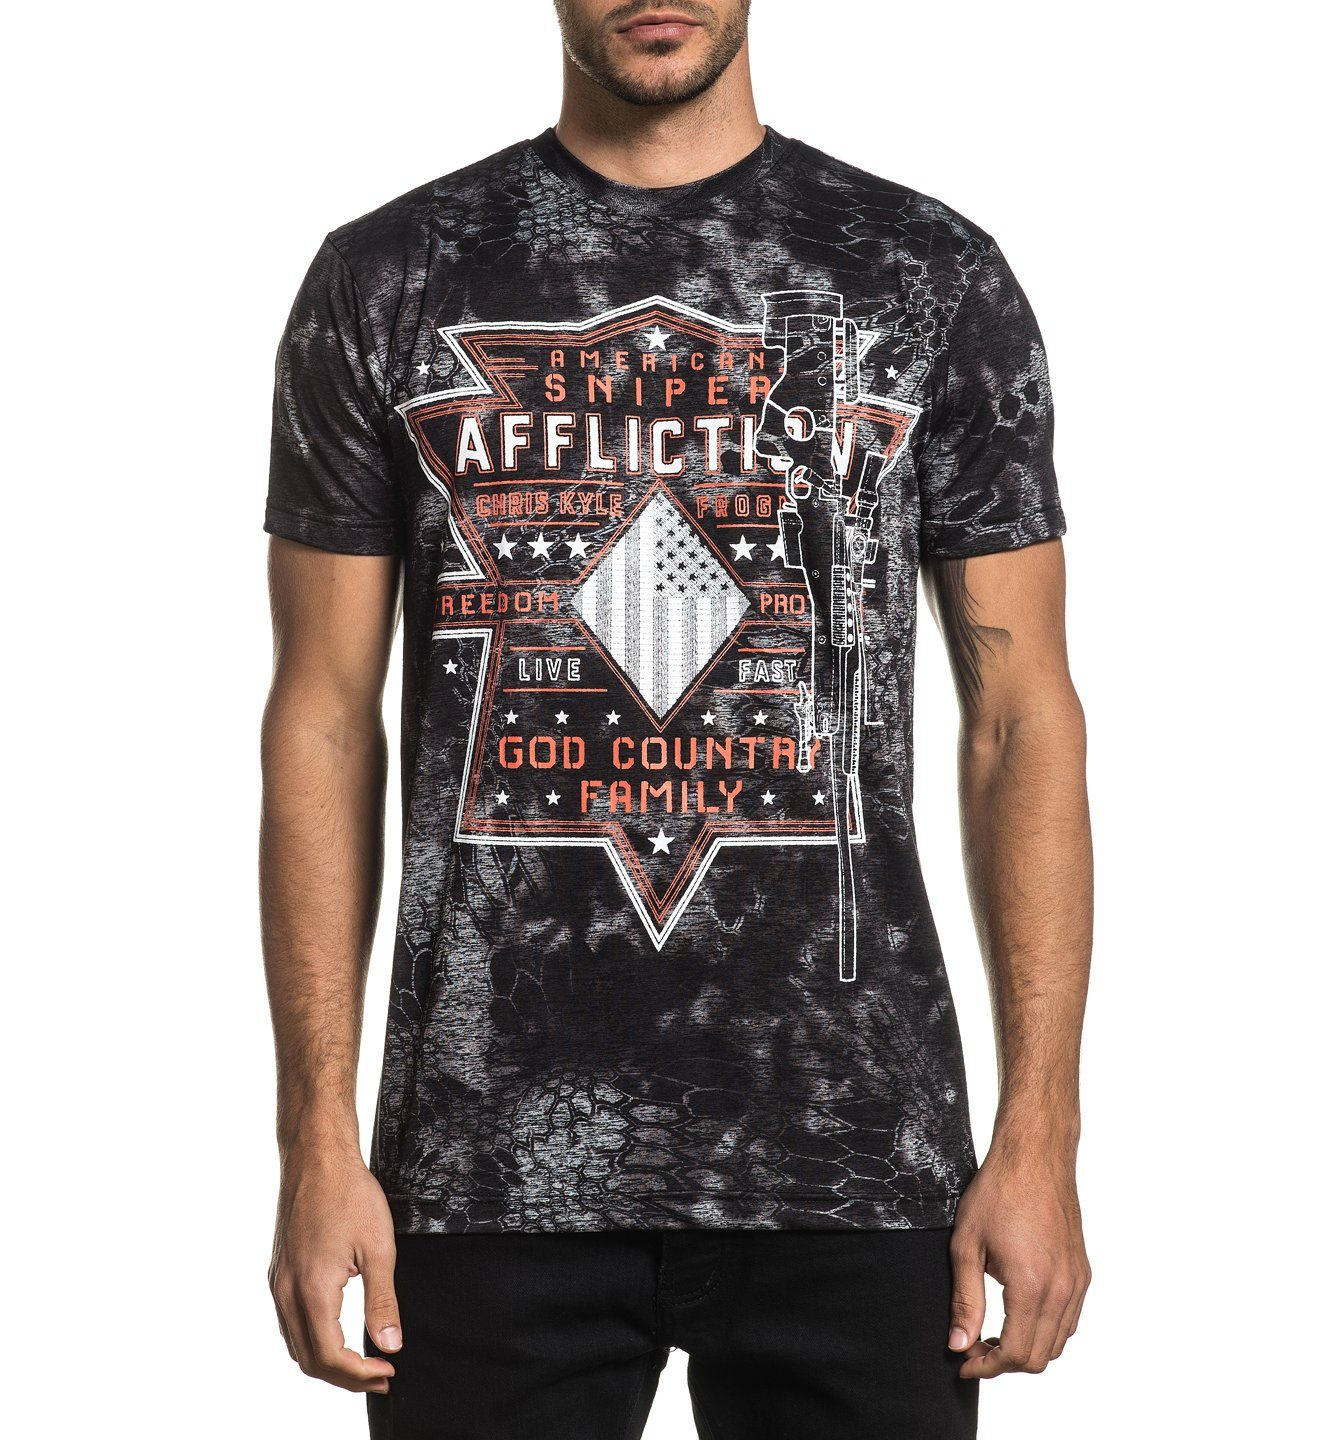 Ck Rifleman - Mens Short Sleeve Tees - Affliction Clothing